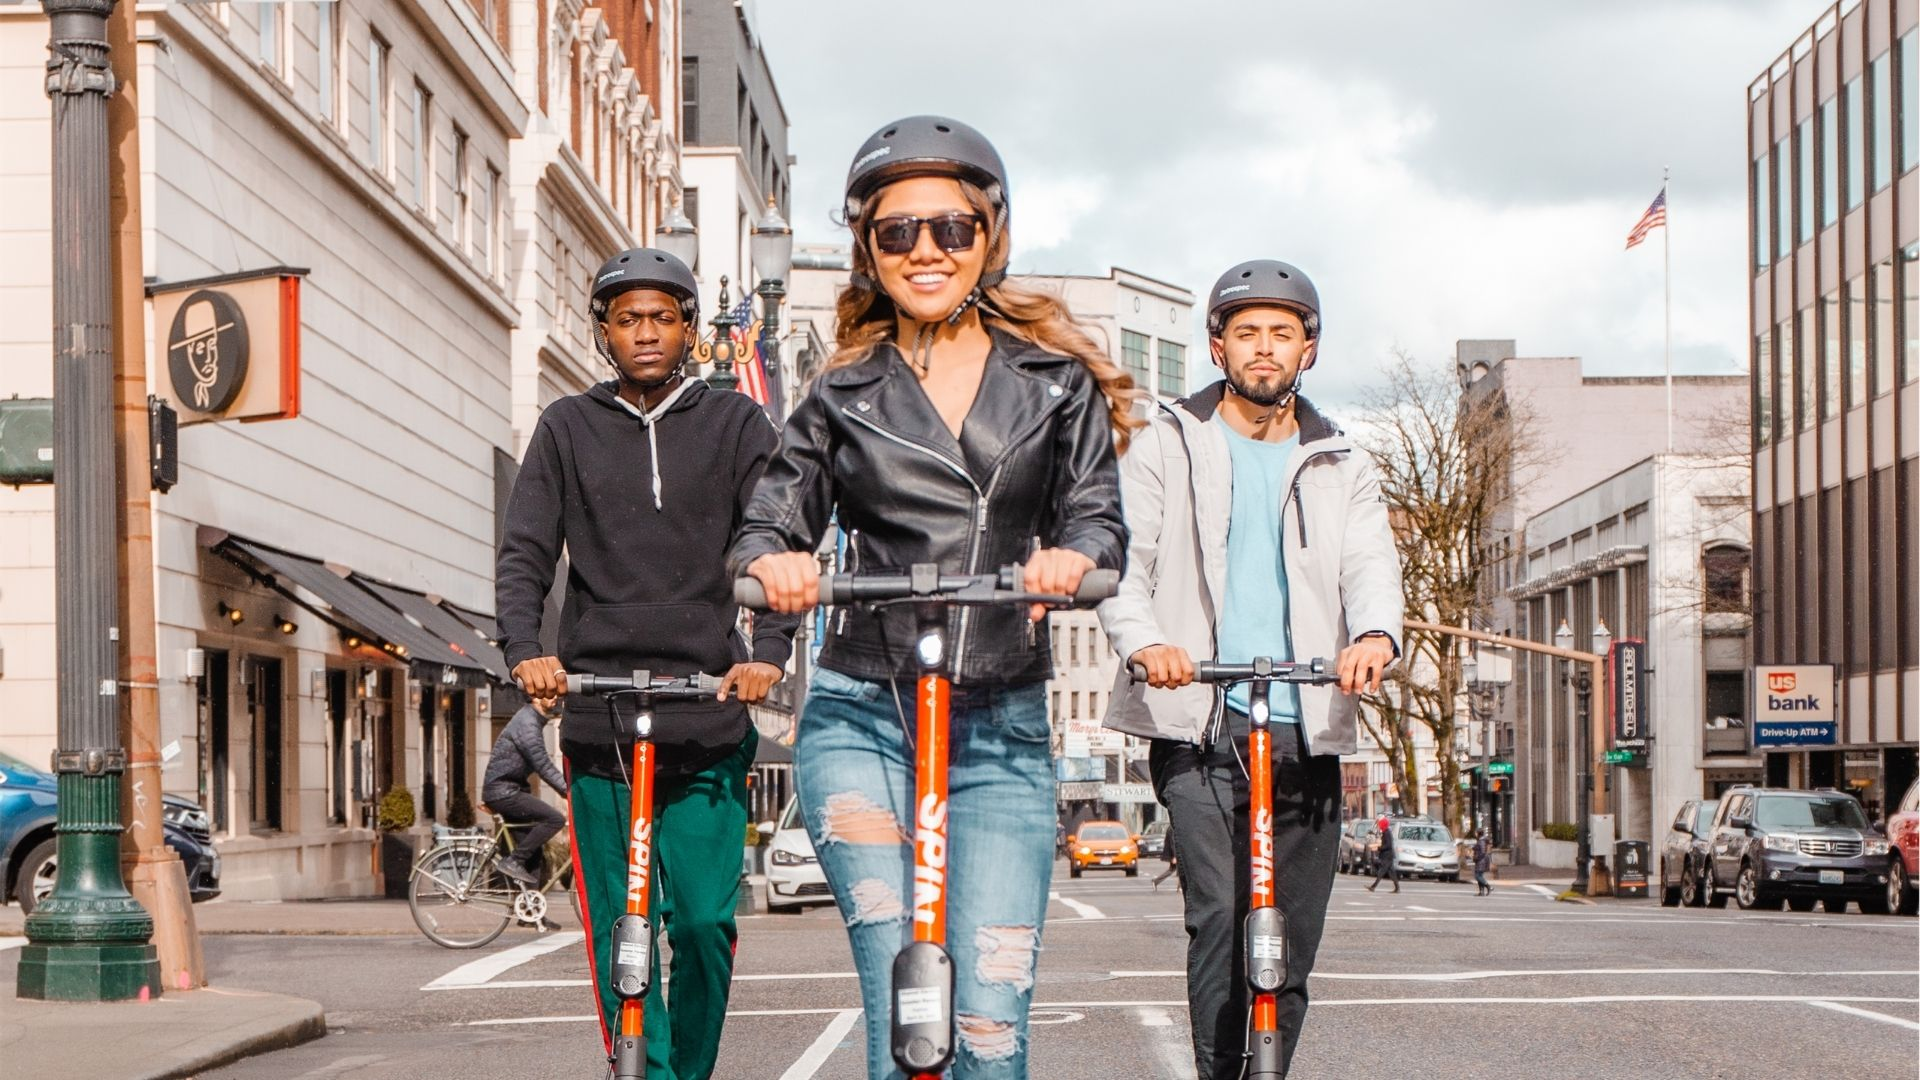 Three young people wearing helmets and riding Spin electric scooters in a triangle formation toward camera